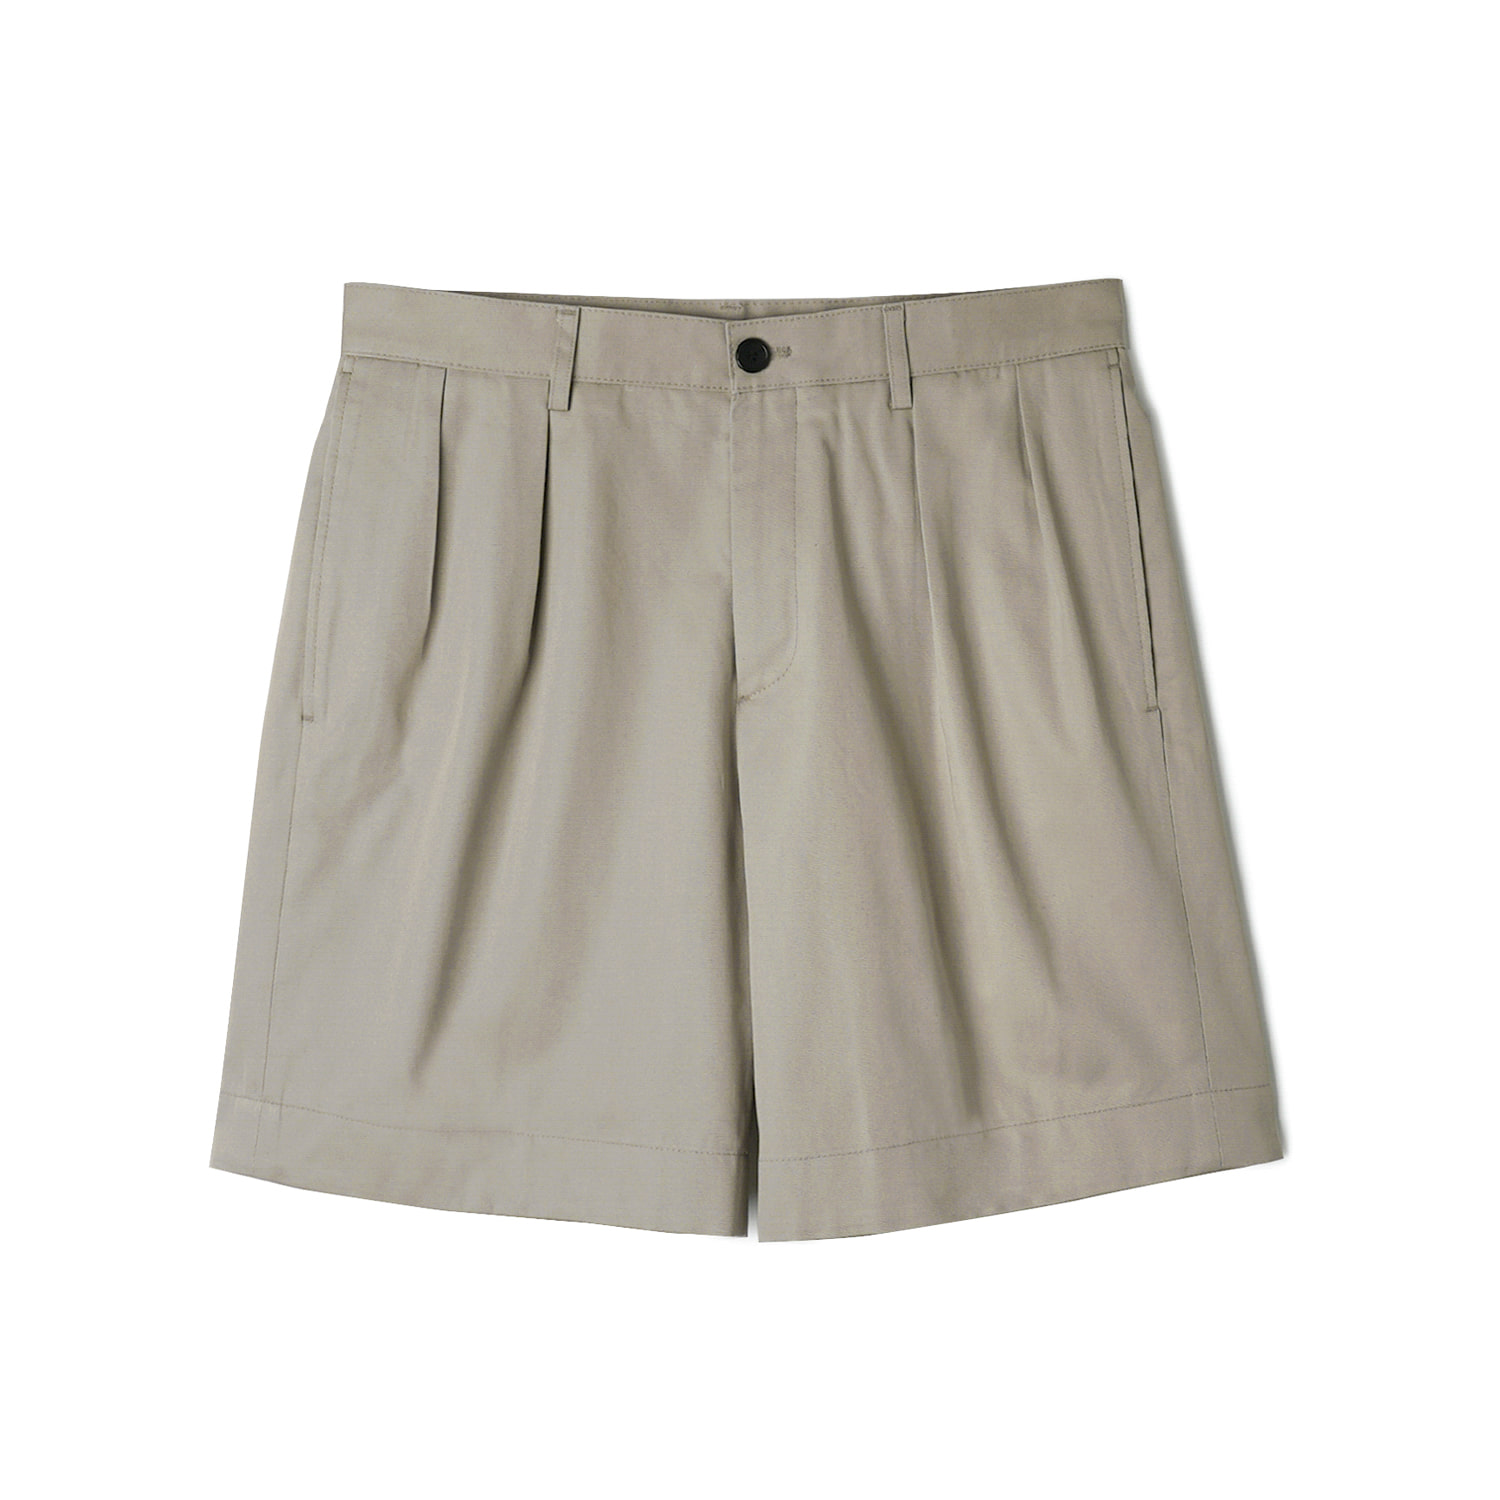 VHS Cotton Twill Chino Two-Tuck Shorts - BeigeBANTS(반츠)